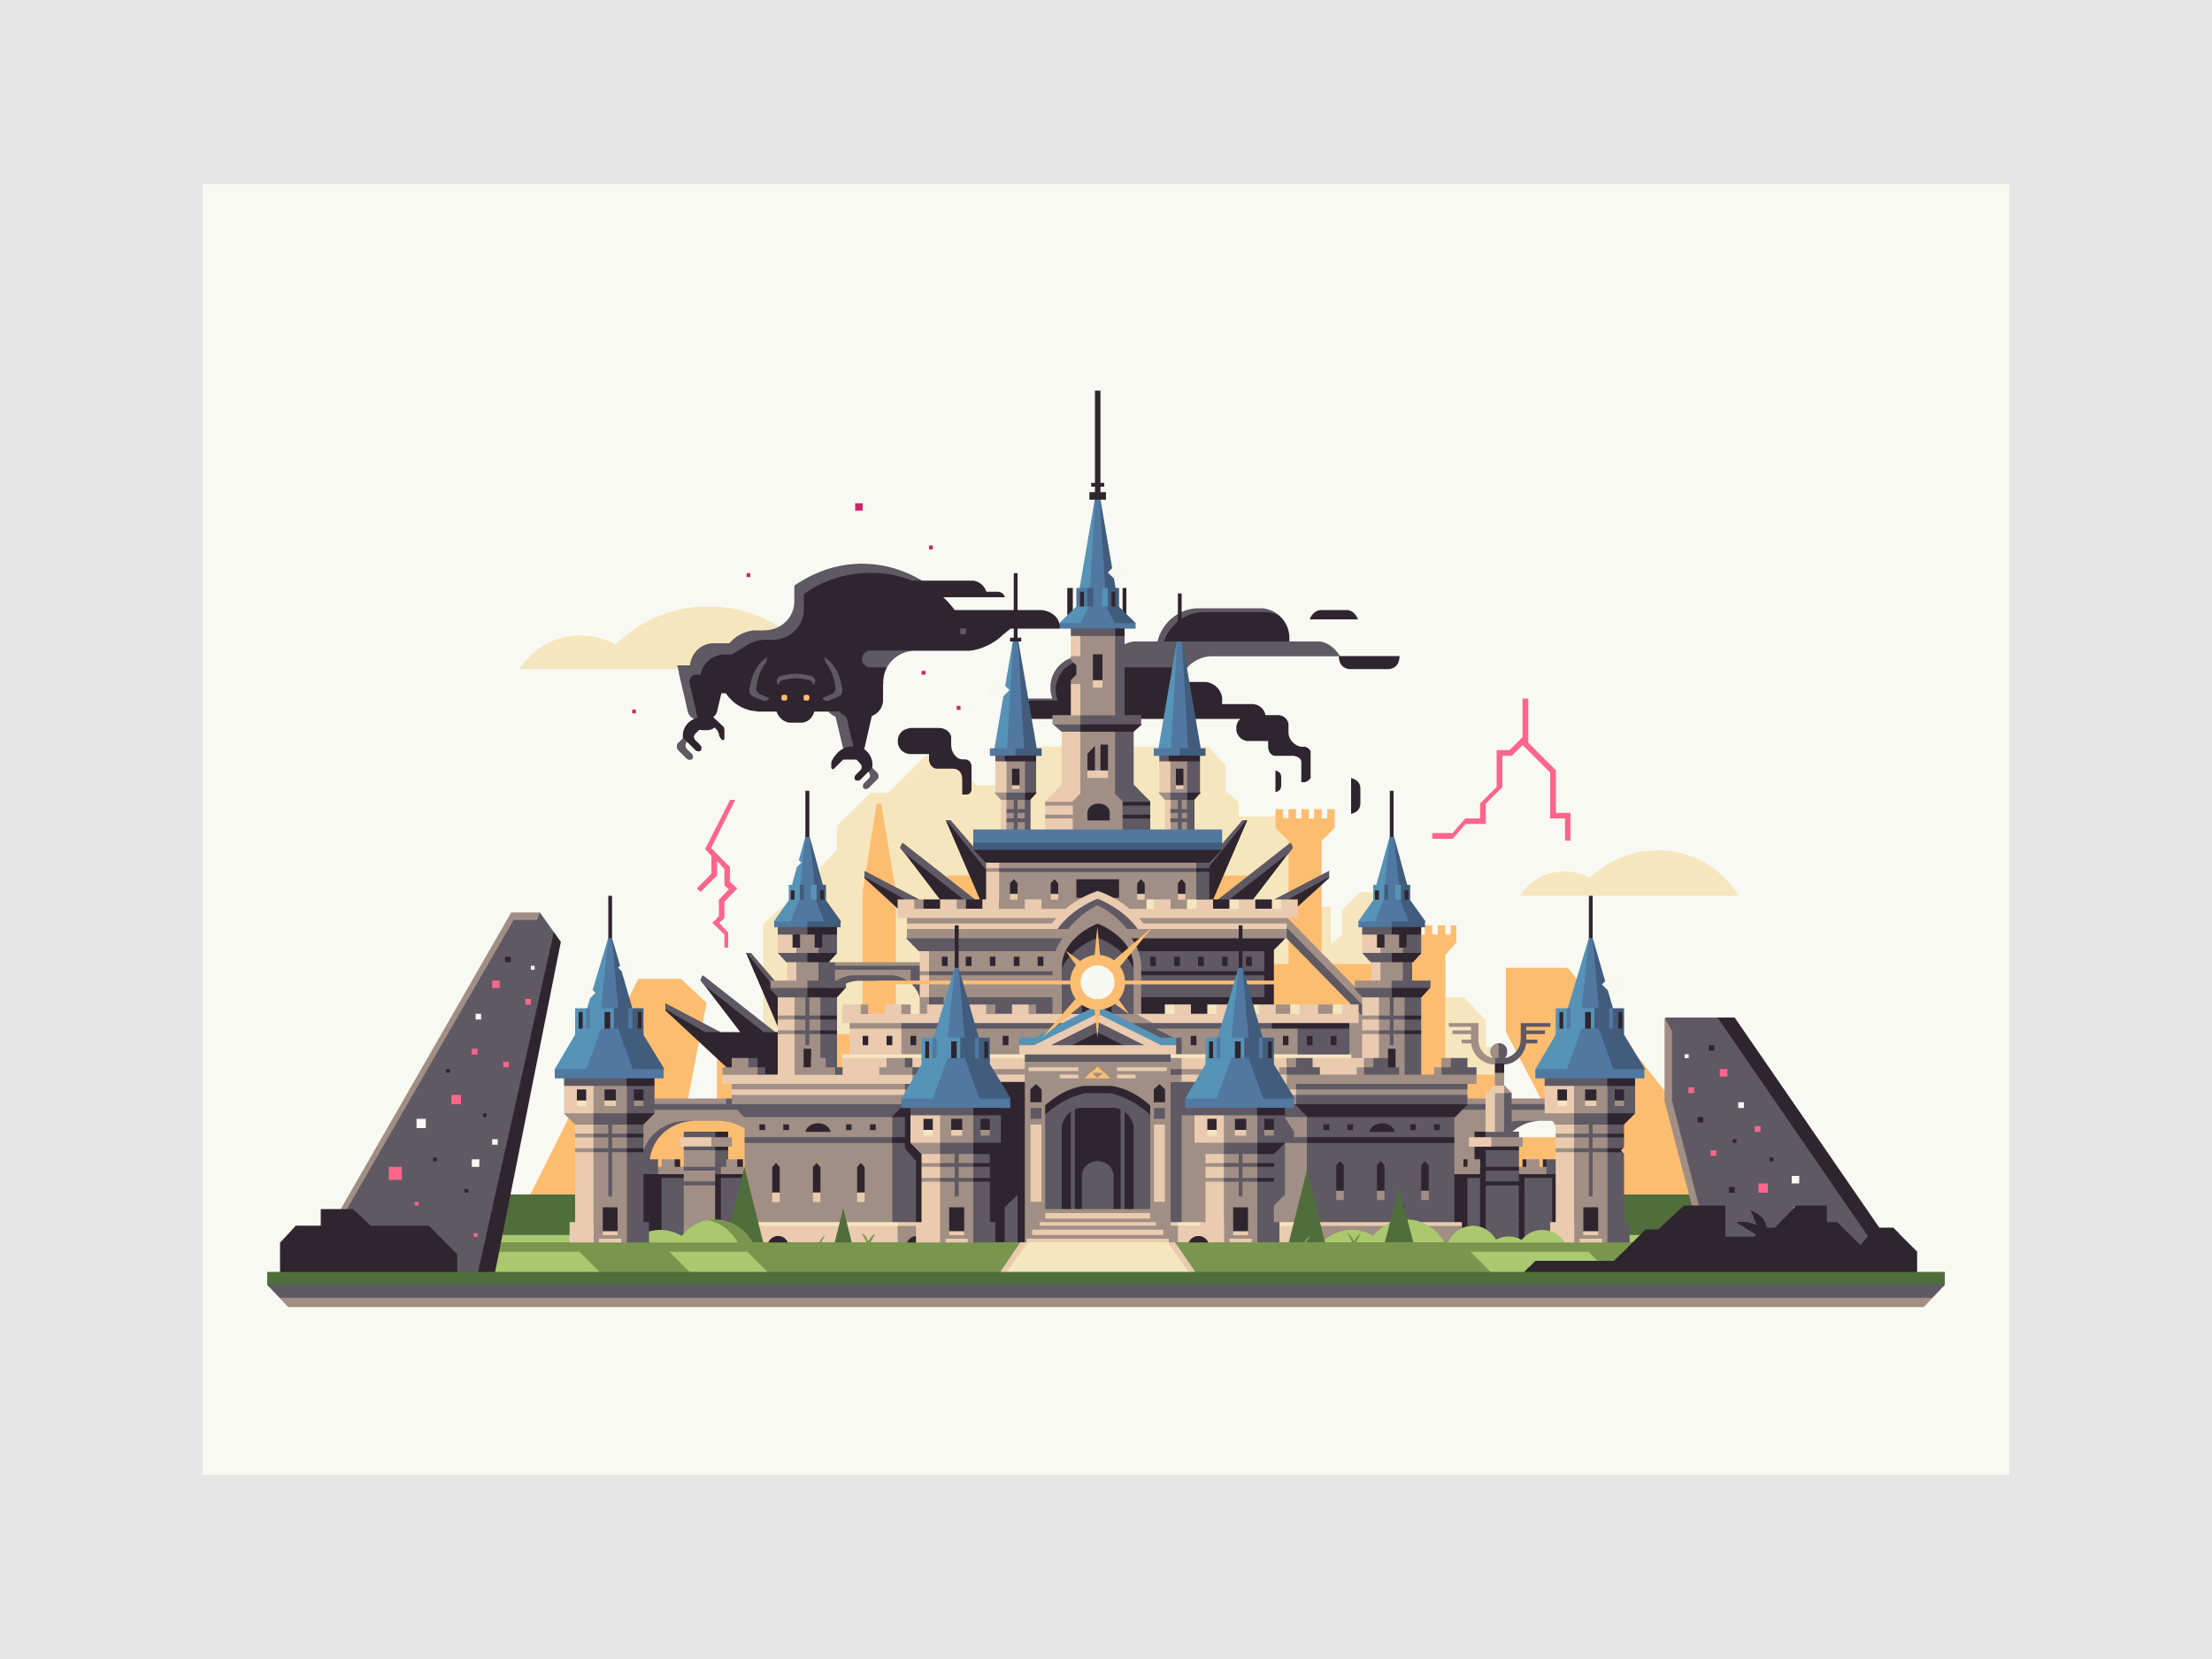 Wild series by Matt Anderson. Inspired by Zelda Breath of the Wild. Corrupted Castle (Hyrule Castle / Calamity Ganon).